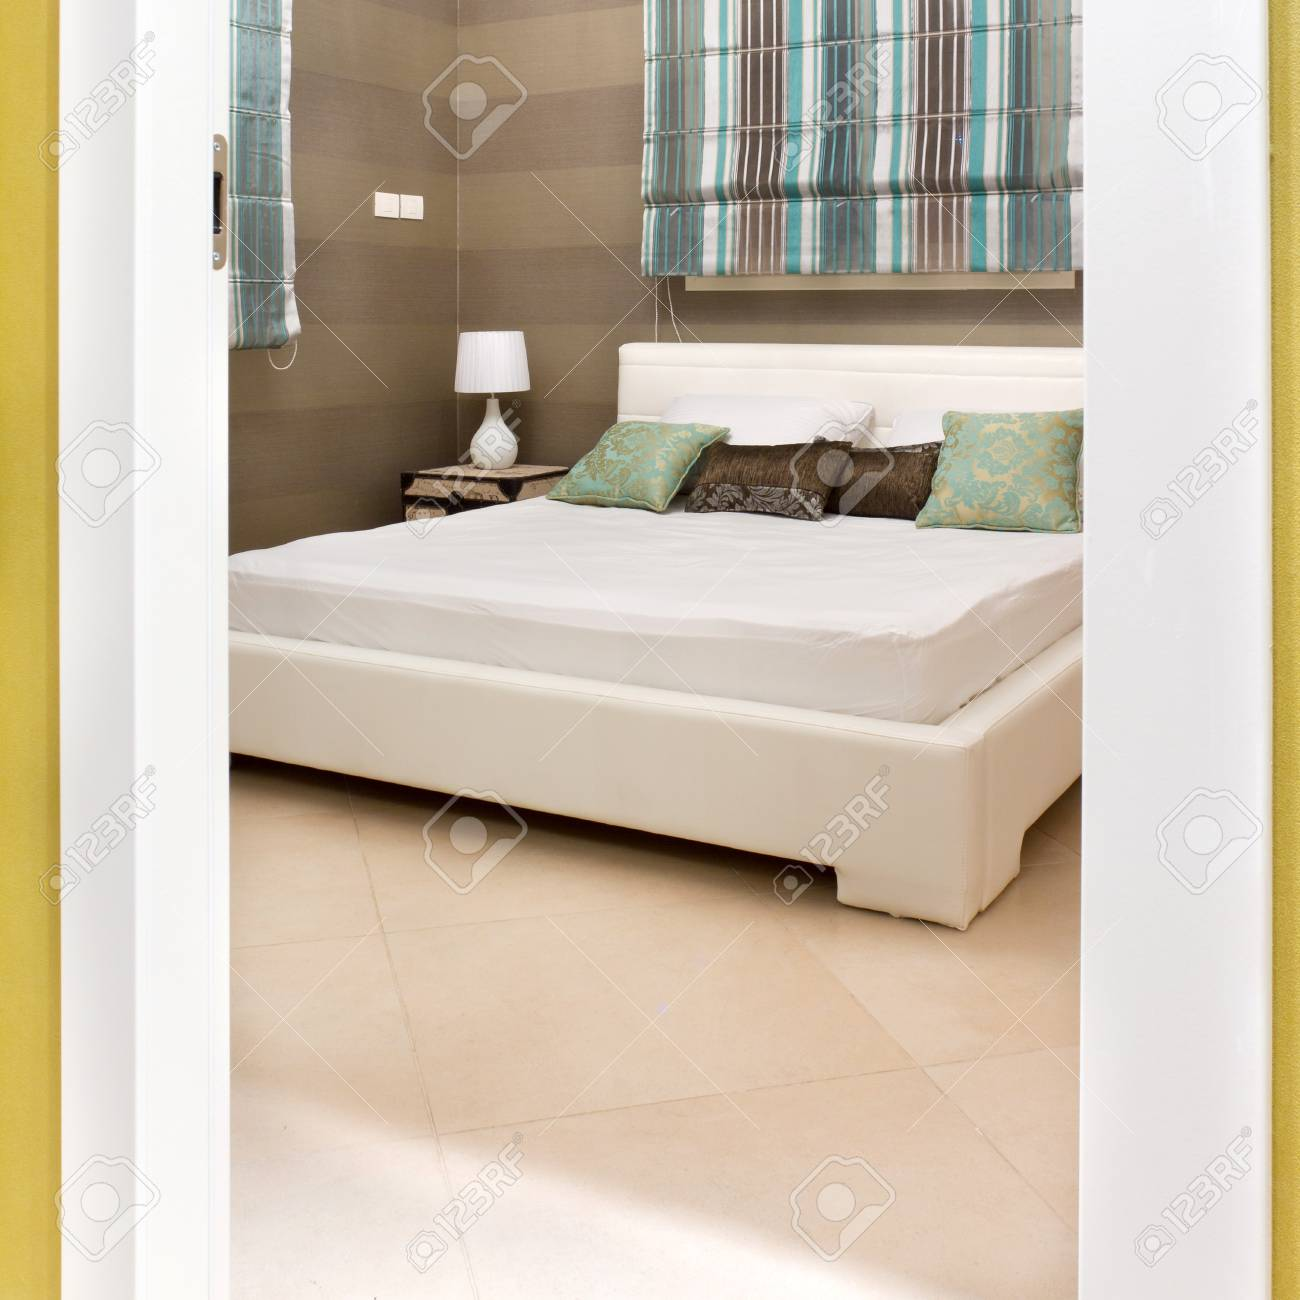 Bedroom with furnishings in a new house Stock Photo - 13957885